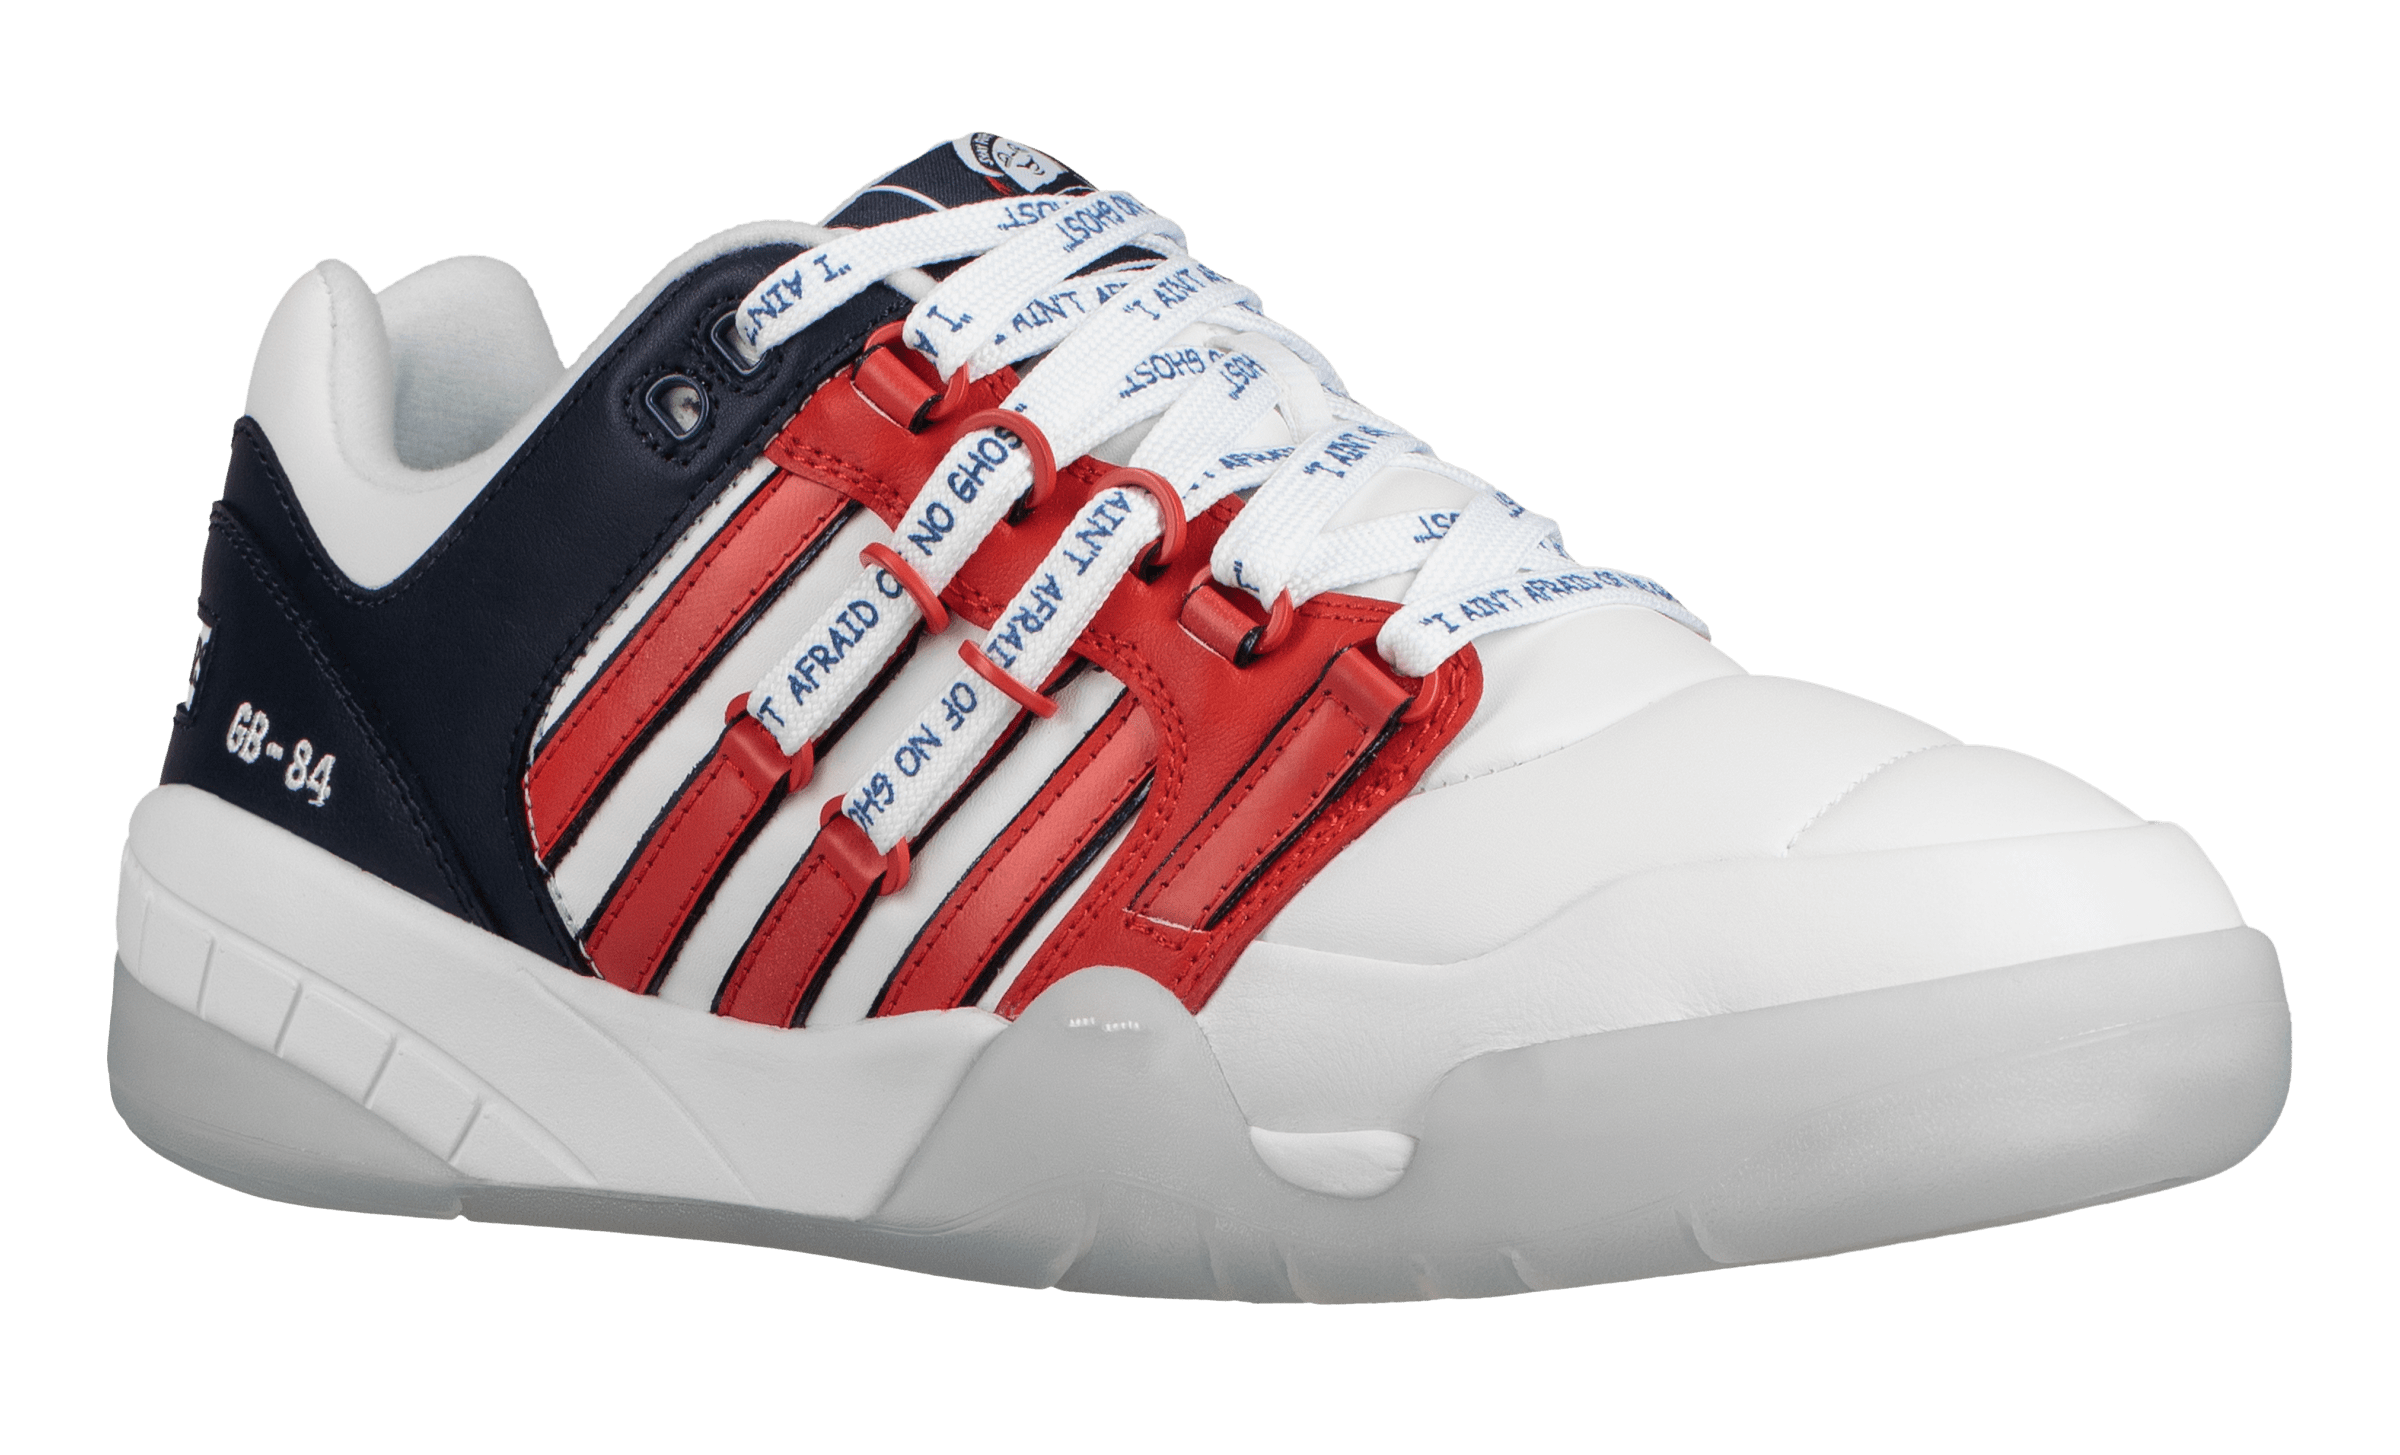 K-Swiss x Ghostbusters Si-18 International 'Stay Puft' 06620-104 (Angle)